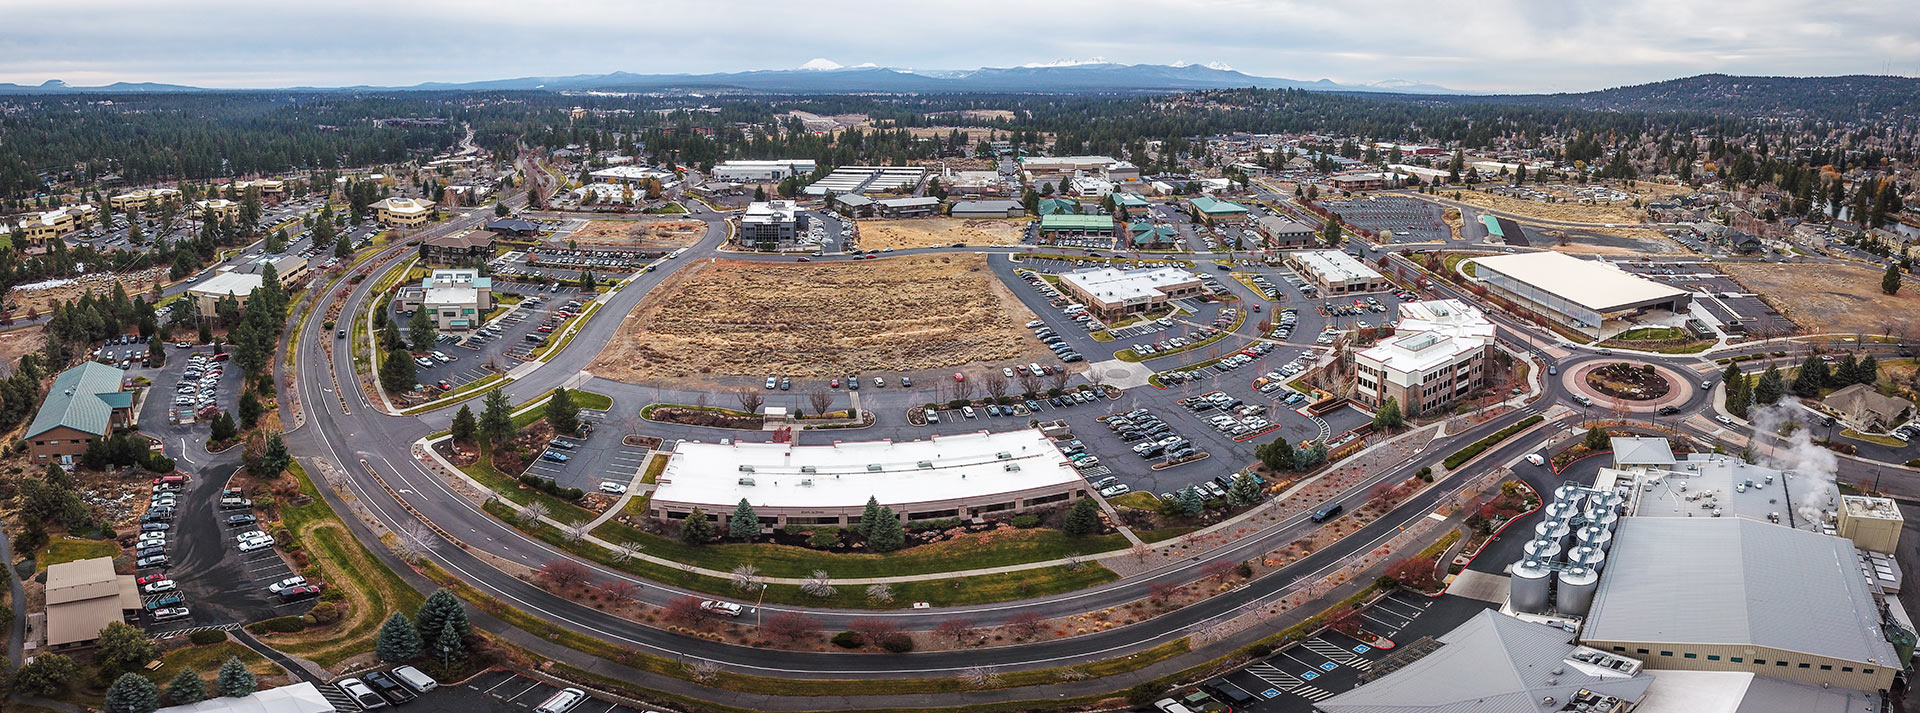 Birdseye panorama of the innovation district in Bend during the fall.